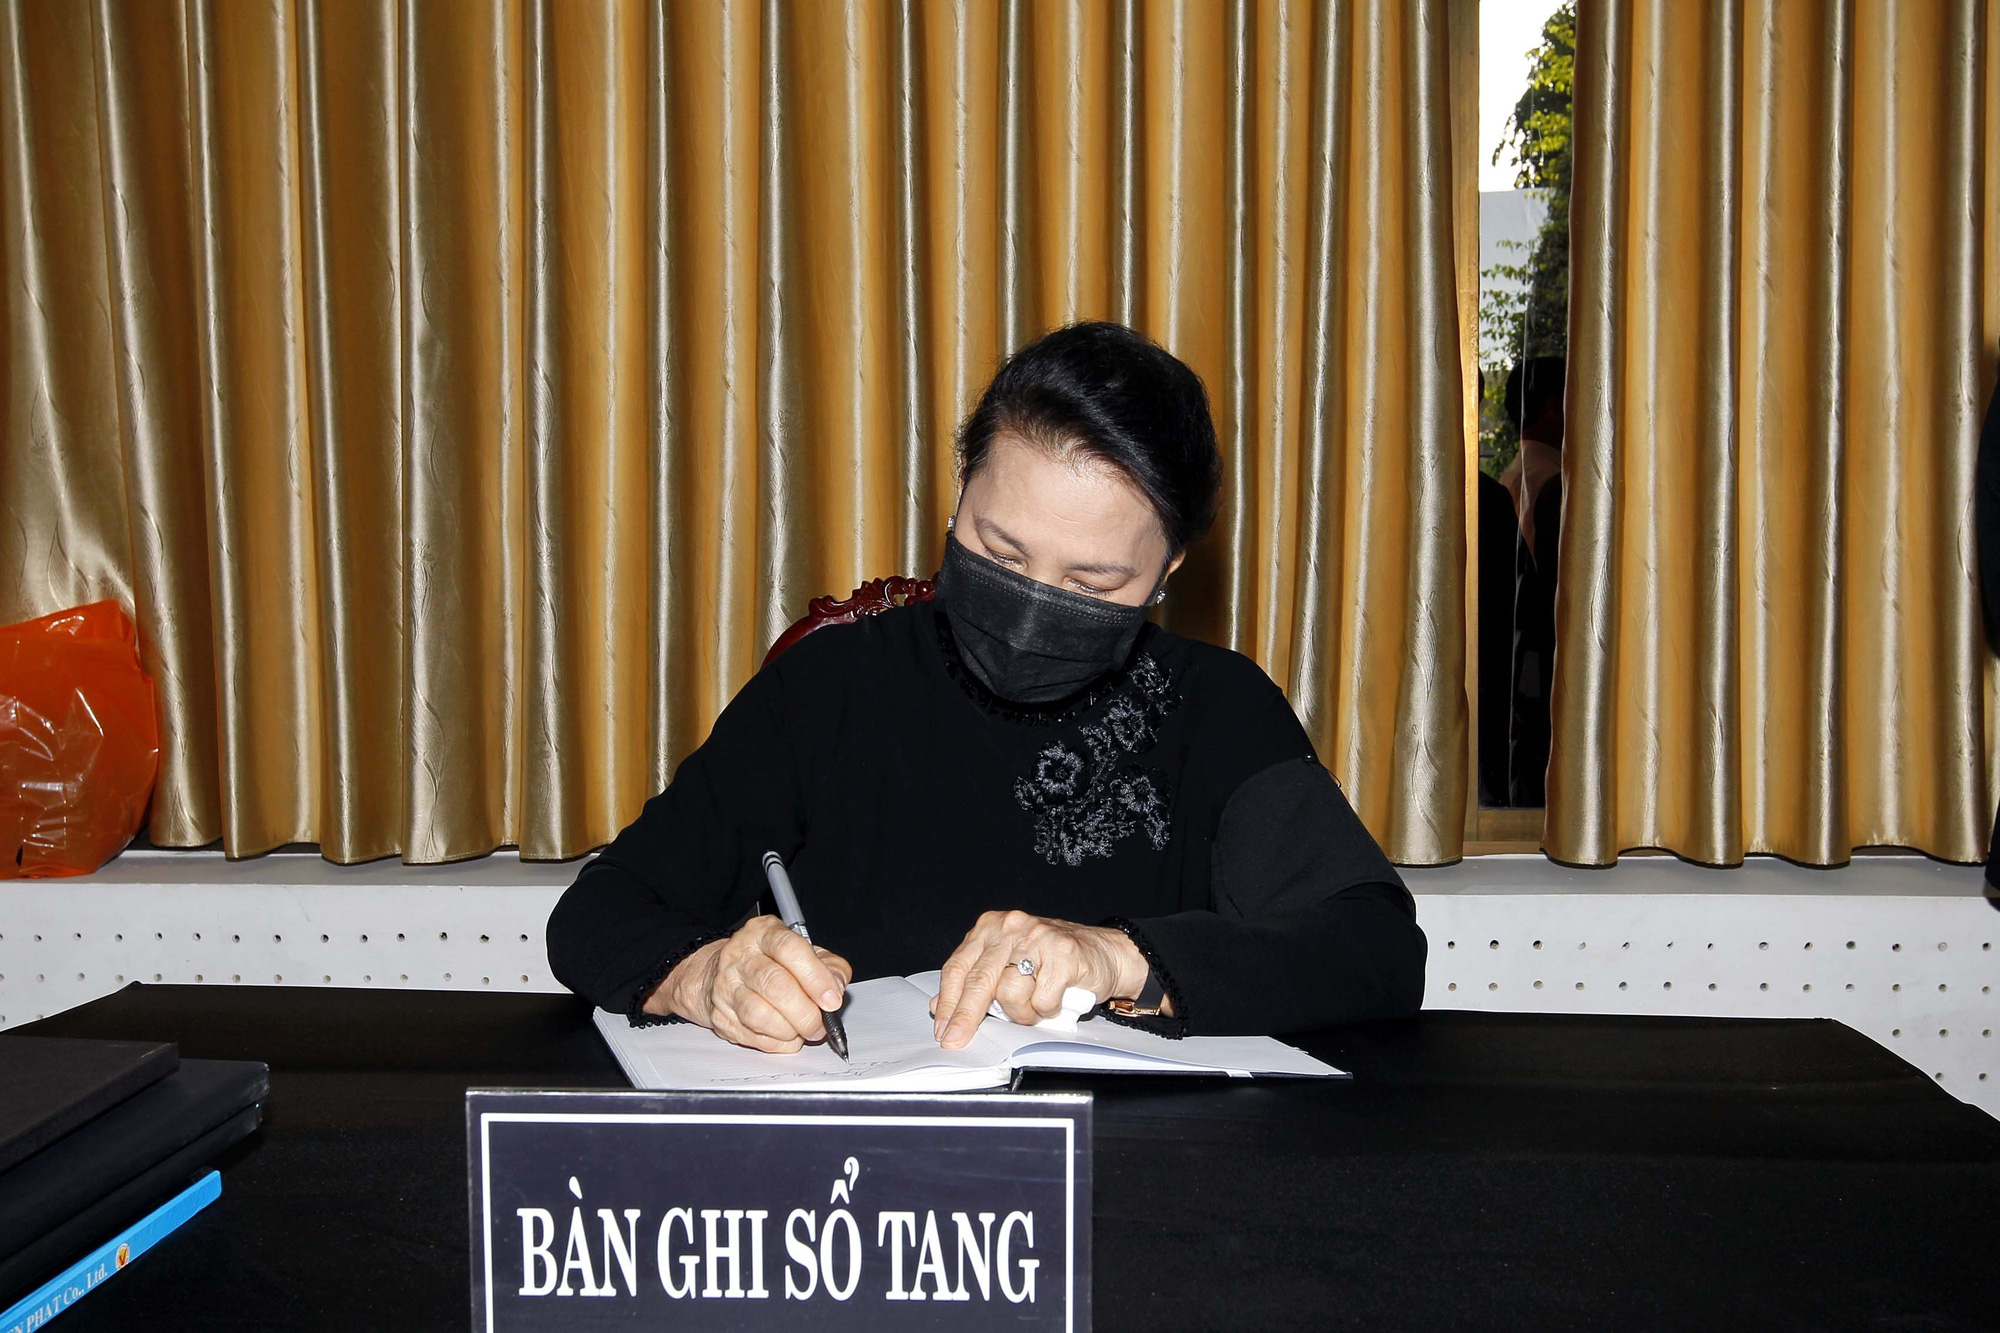 National Assembly Chairwoman Nguyen Thi Kim Ngan writes in the funeral book at the funeral of former Deputy Prime Minister Truong Vinh Trong in Ben Tre Province, Vietnam, February 21, 2021. Photo: Tu Trung / Tuoi Tre